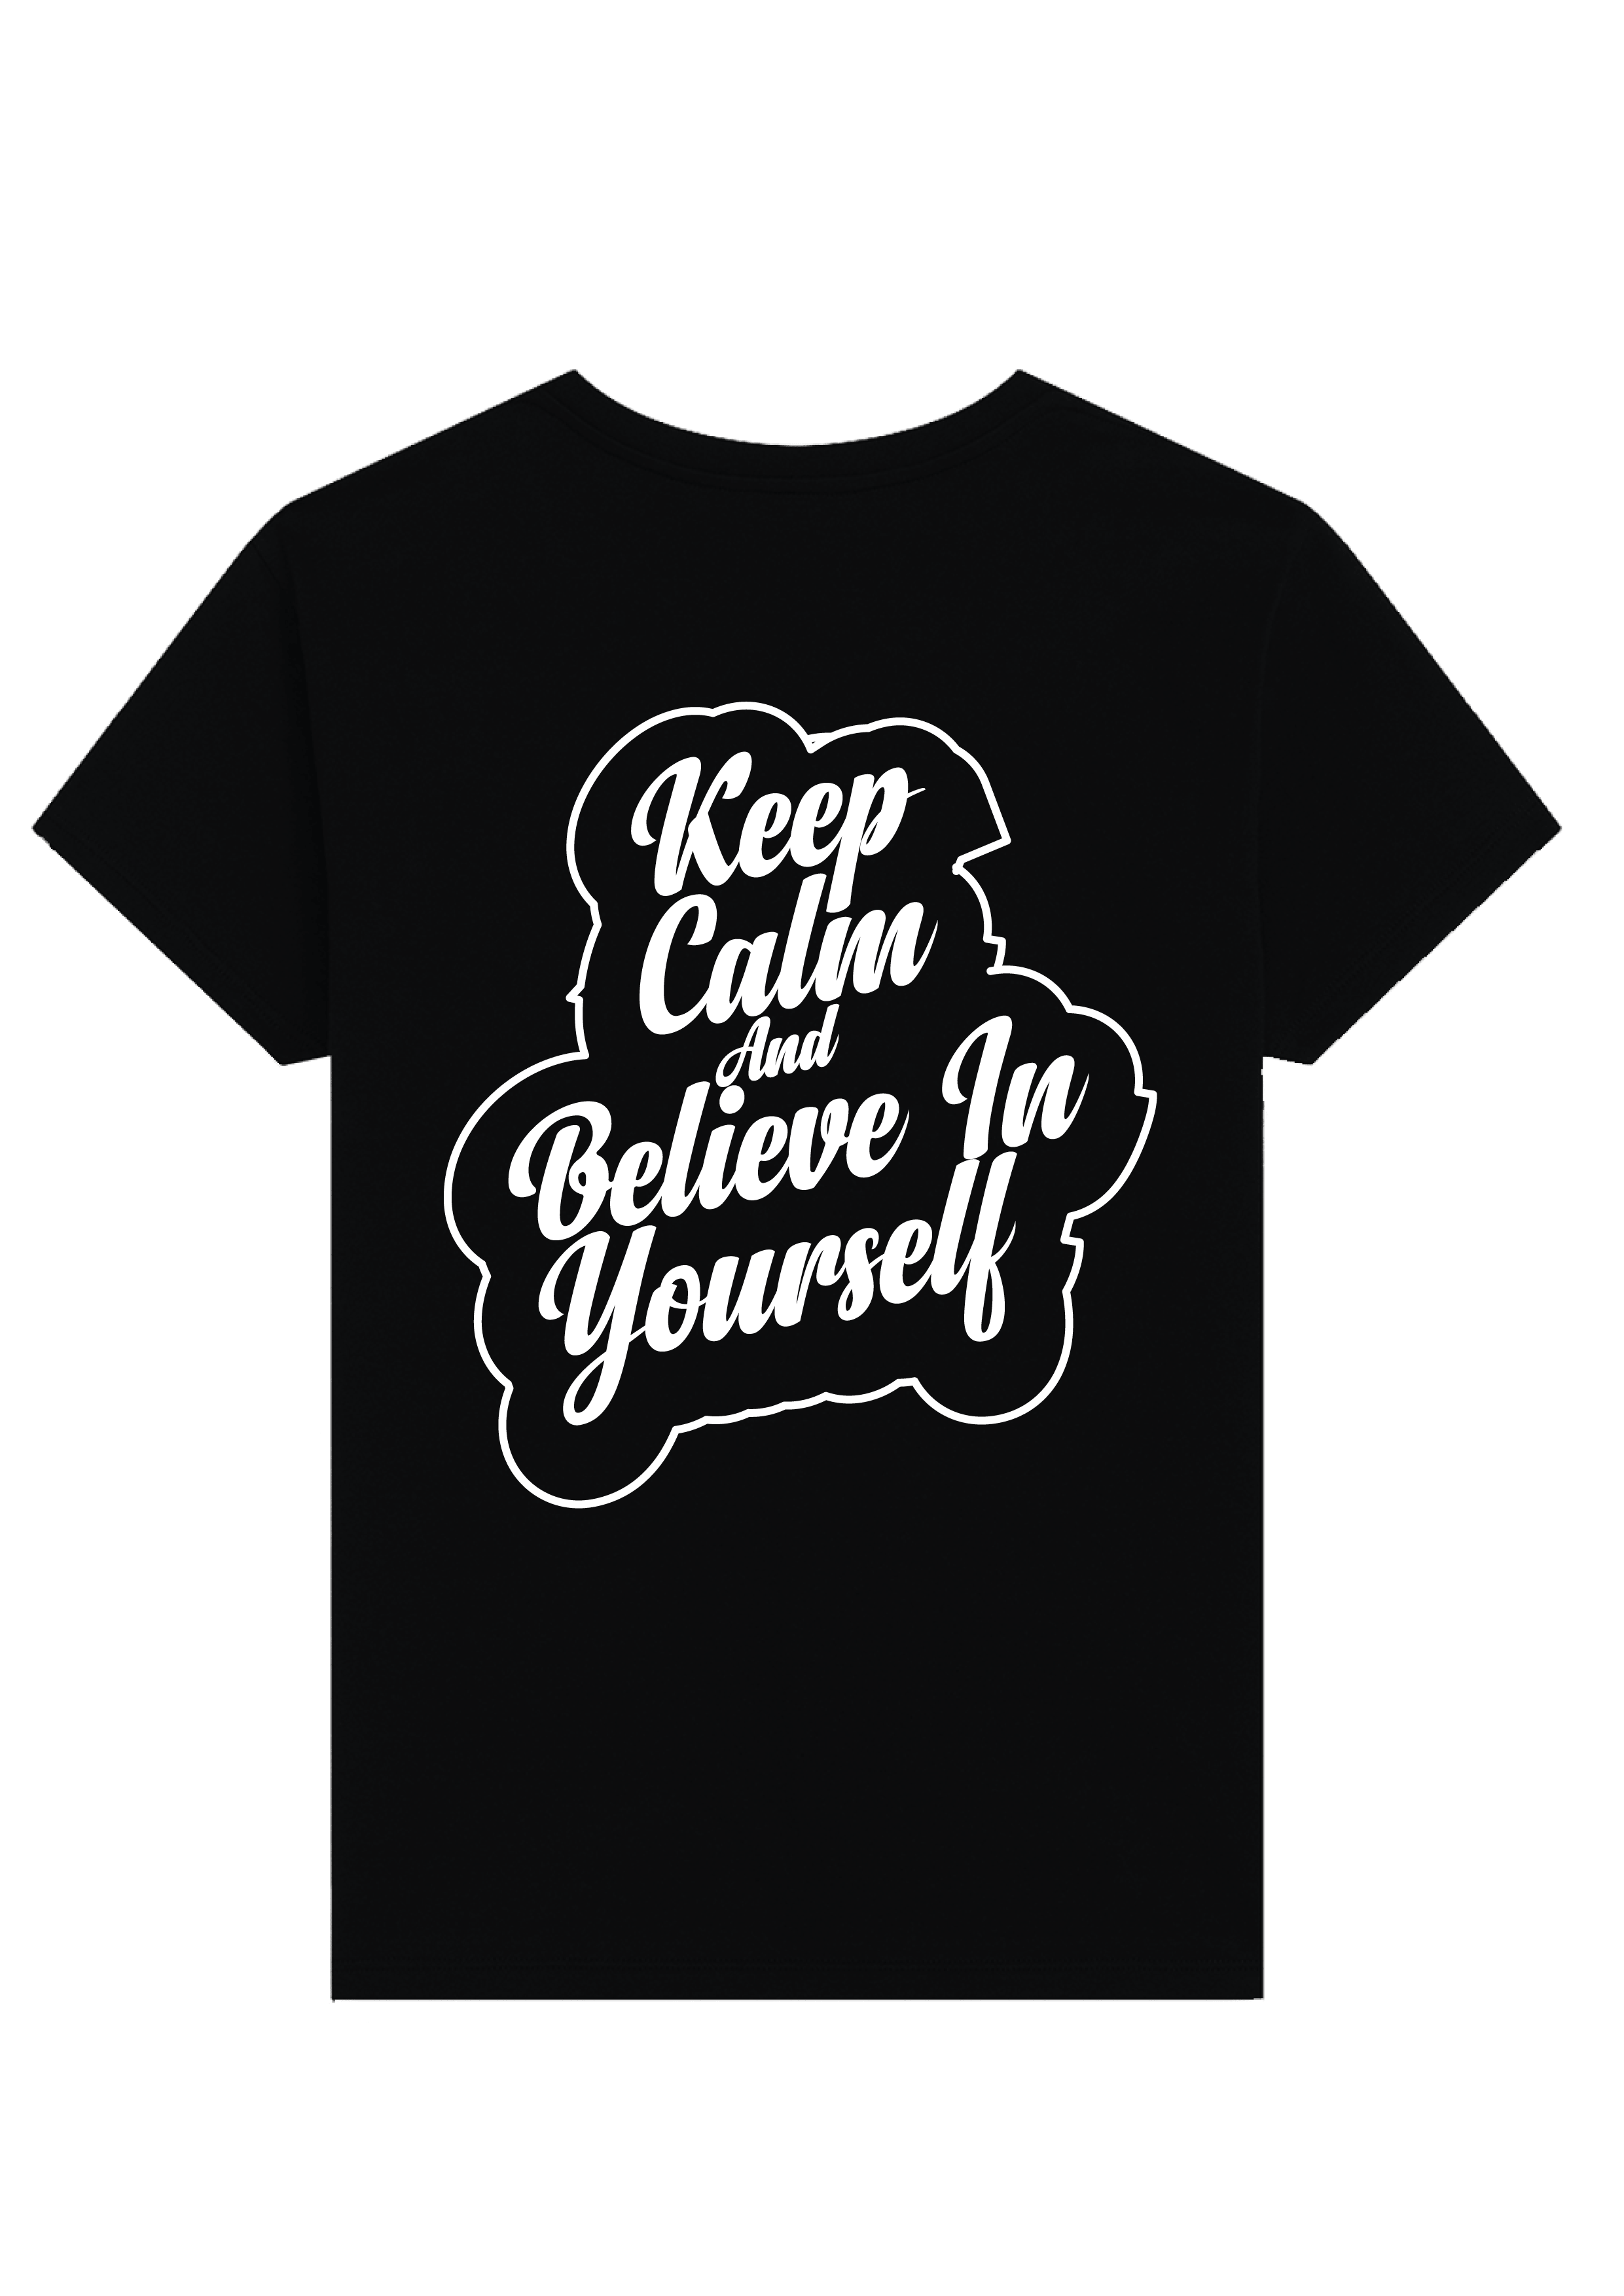 Keep calm and believe in yourself T-shirt for Men Slider Thumbnail 2/2